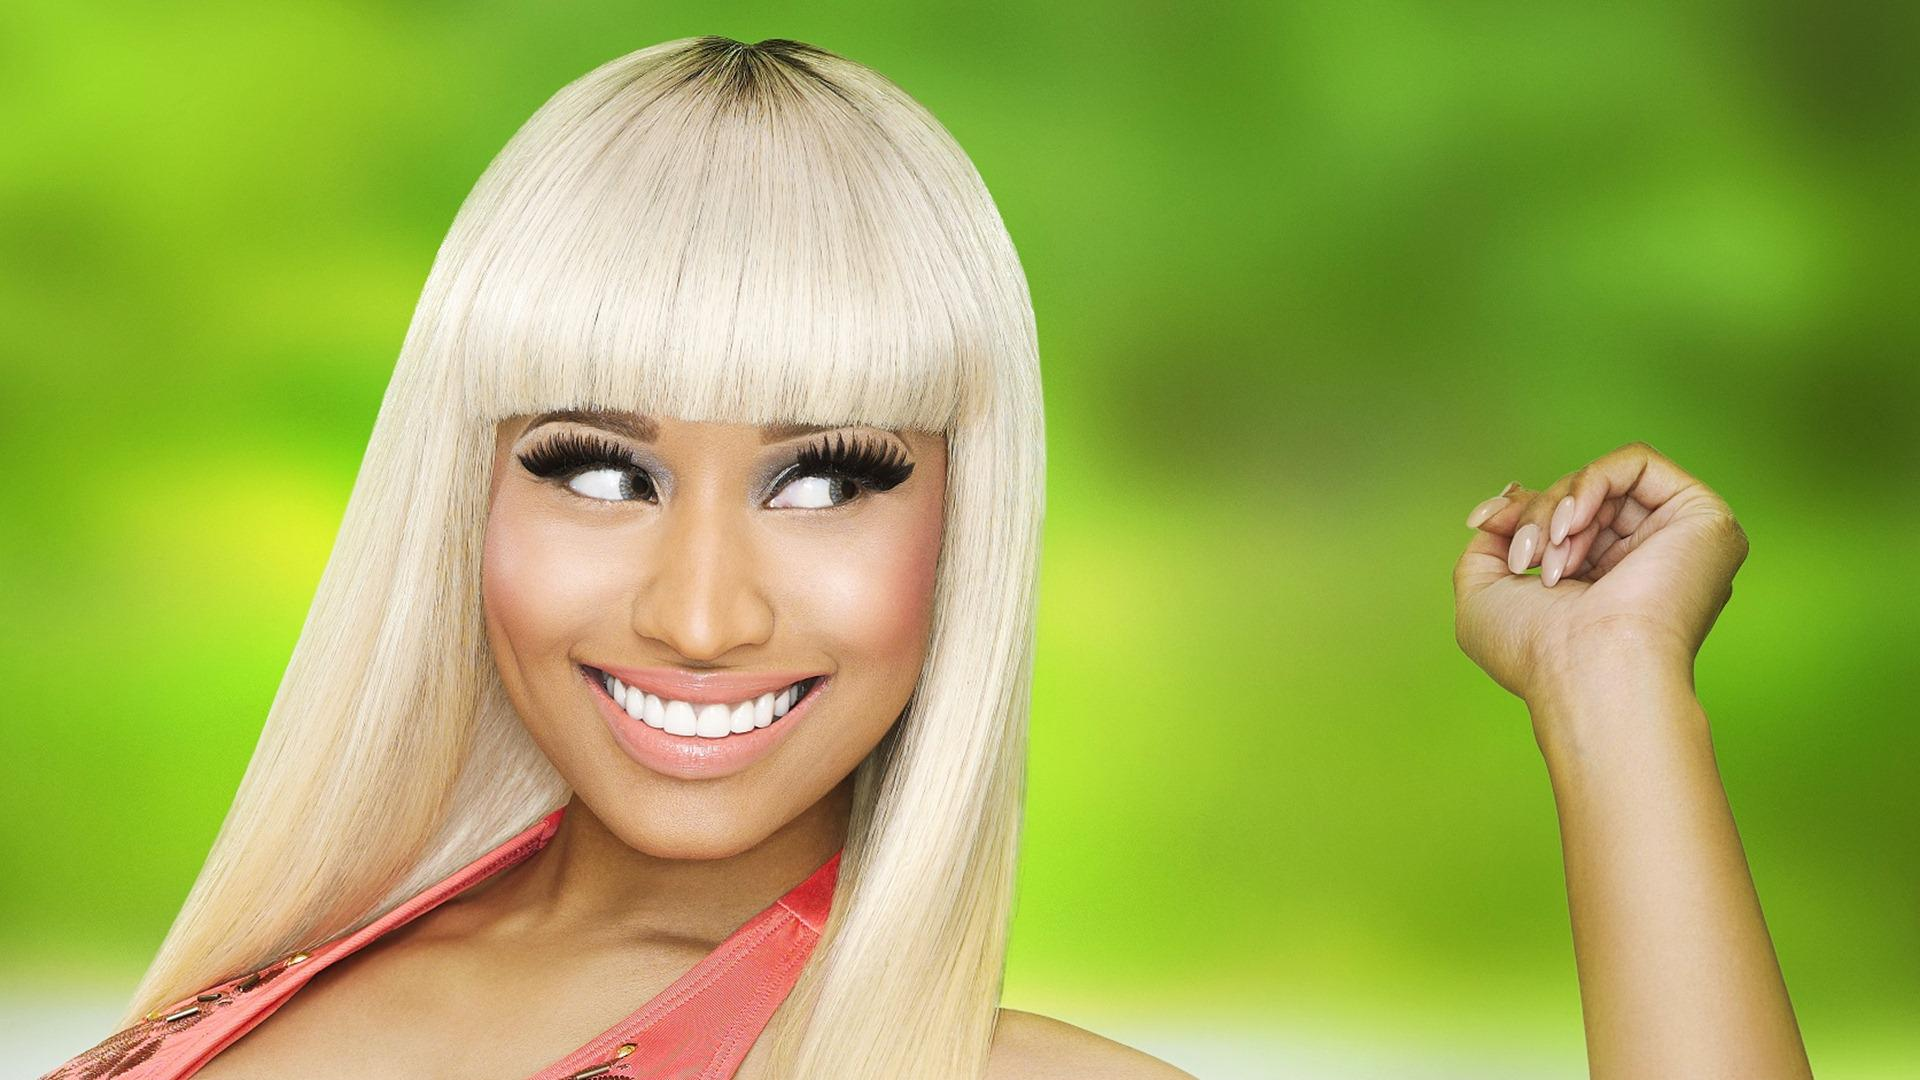 Nicki minaj smile desktop wallpaper 53363 1920x1080 px nicki minaj smile desktop wallpaper 53363 voltagebd Image collections